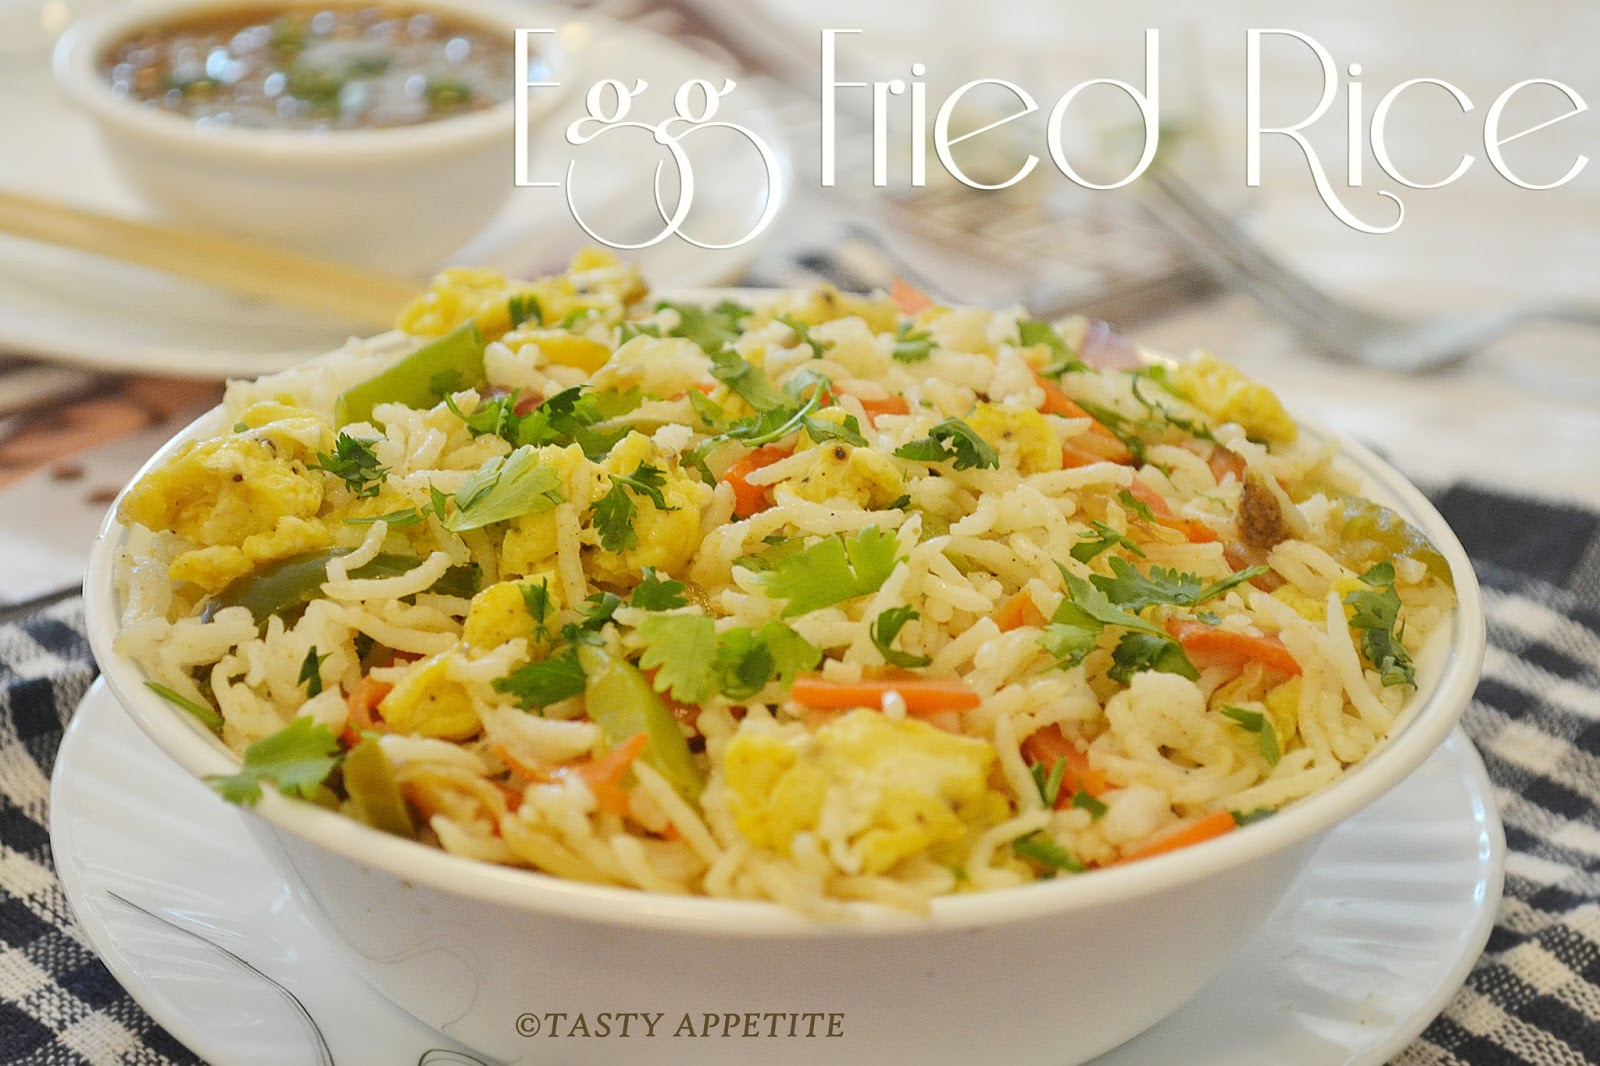 Egg fried rice restaurant style fried rice recipe quick easy egg fried rice restaurant style fried rice recipe quick easy fried rice recipe ccuart Images